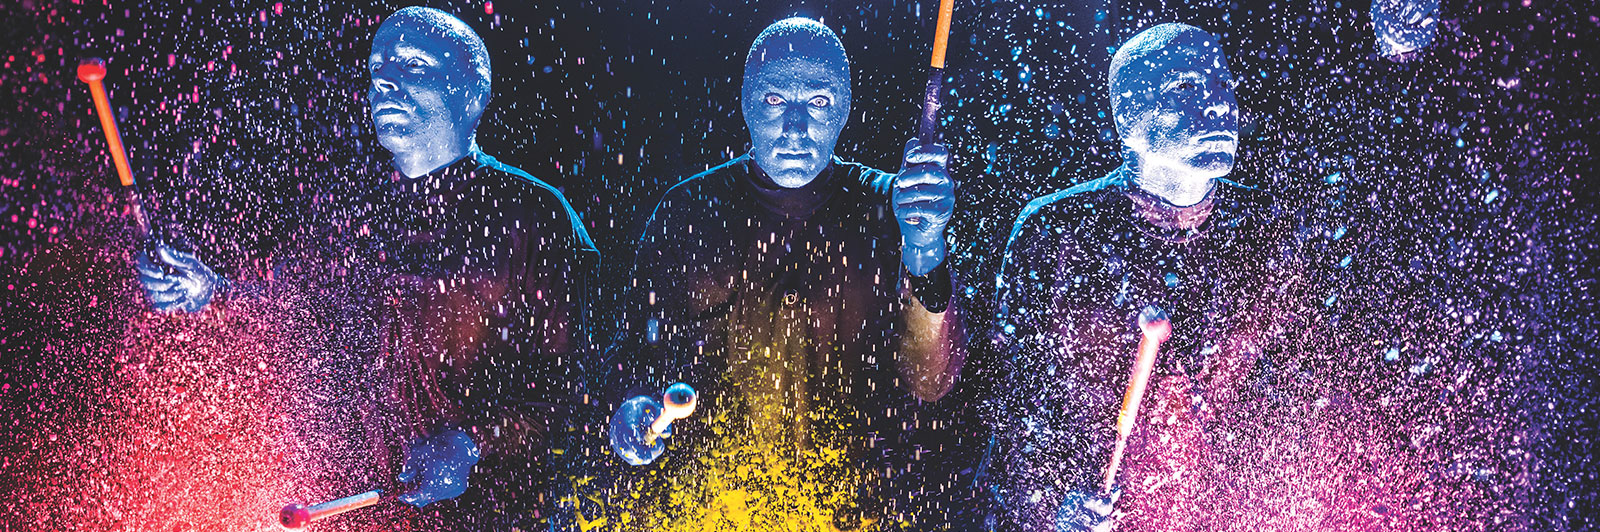 Save up to 60% on Las Vegas Blue Man Group tickets with the Las Vegas All-Inclusive Pass. Admission to dozens of attractions for one low price.